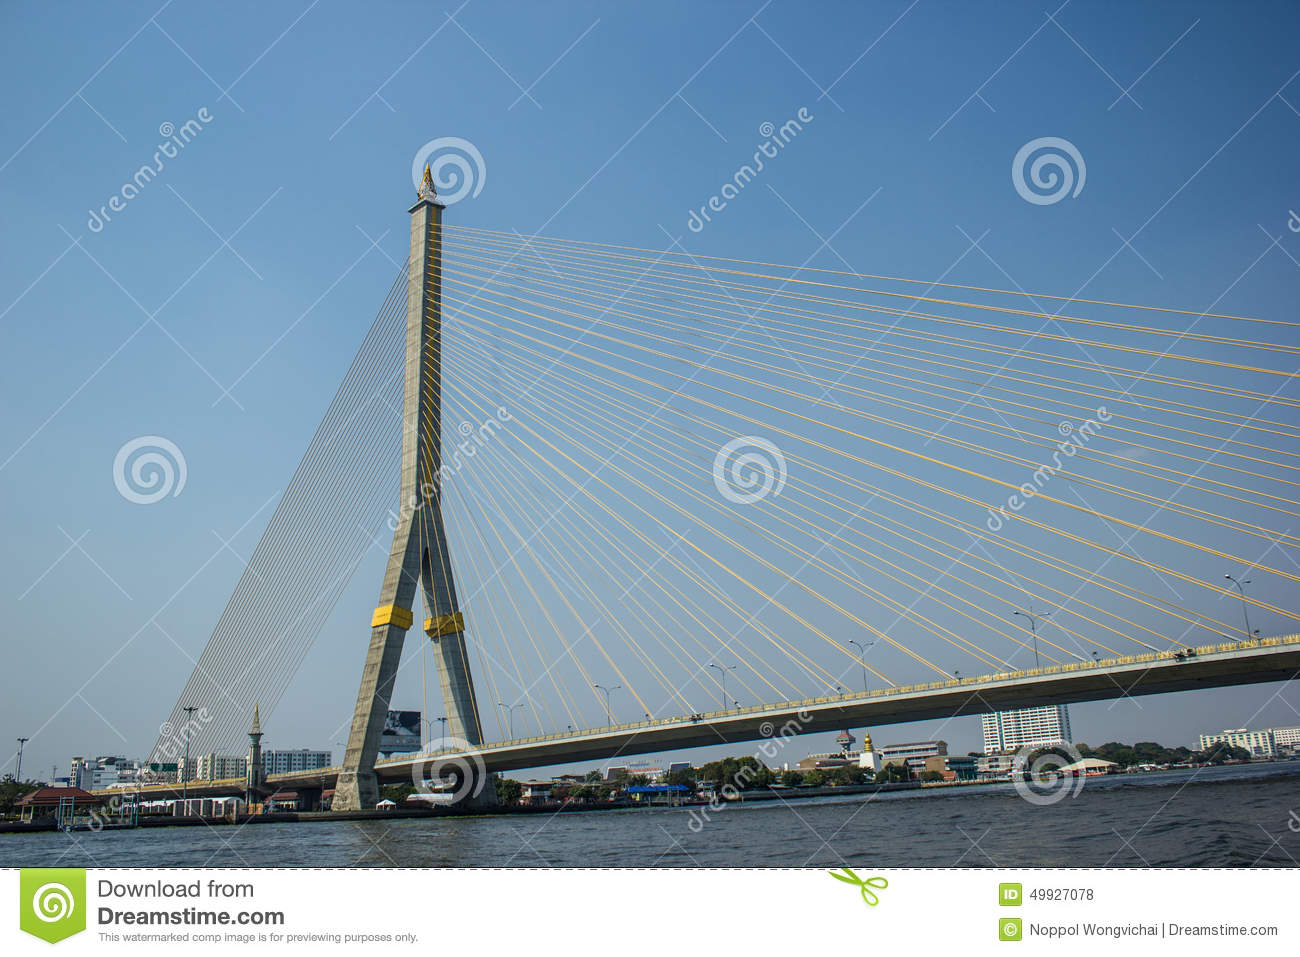 Cantilever Bridge Diagram Related Keywords Suggestions Cantilever